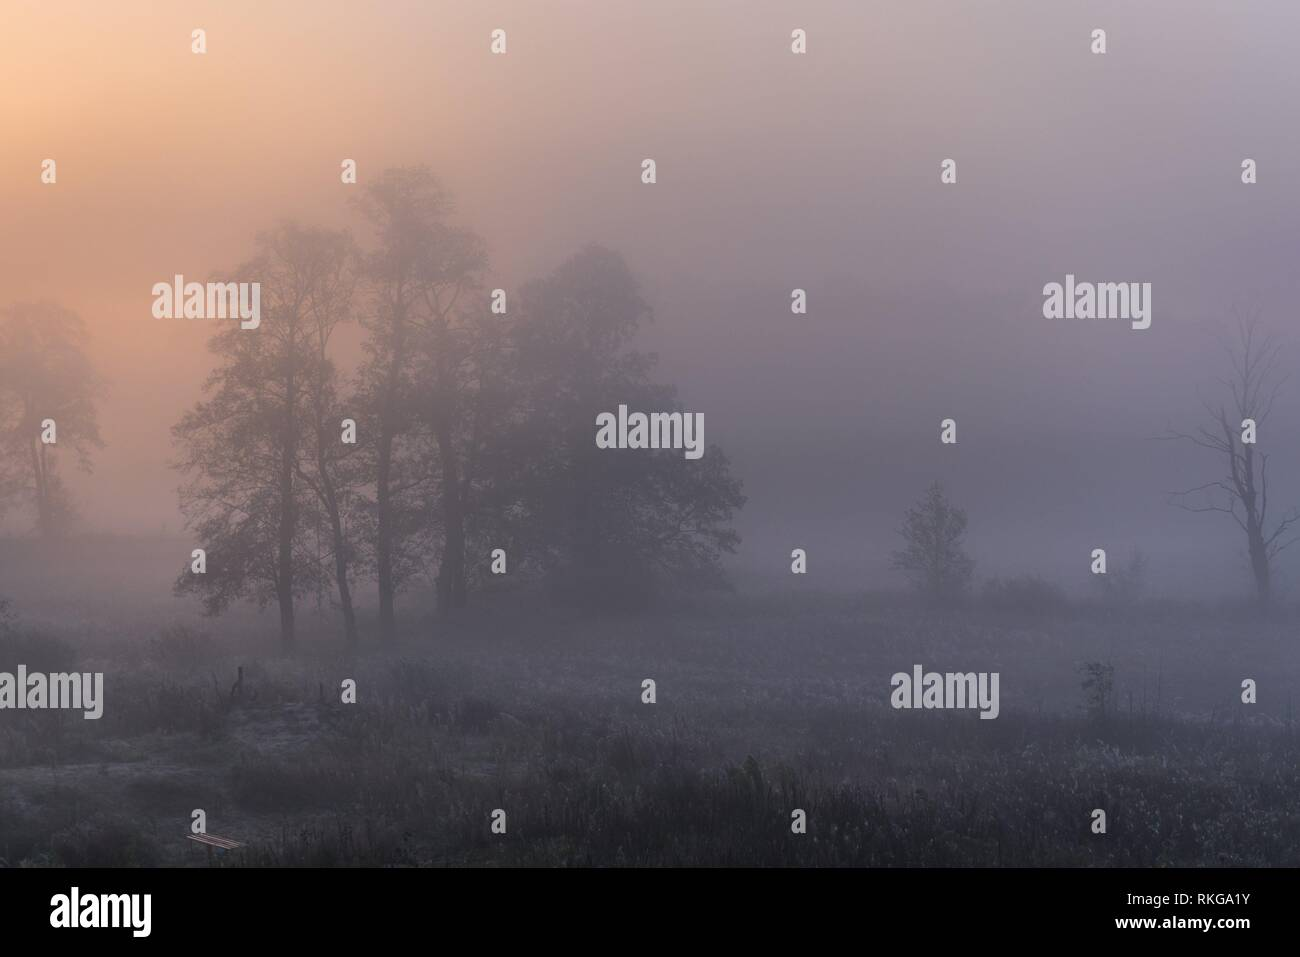 Morning fog in Gorki village, Sochaczew County on the edge of Kampinos Forest, large forests complex in Masovian Voivodeship of Poland. - Stock Image